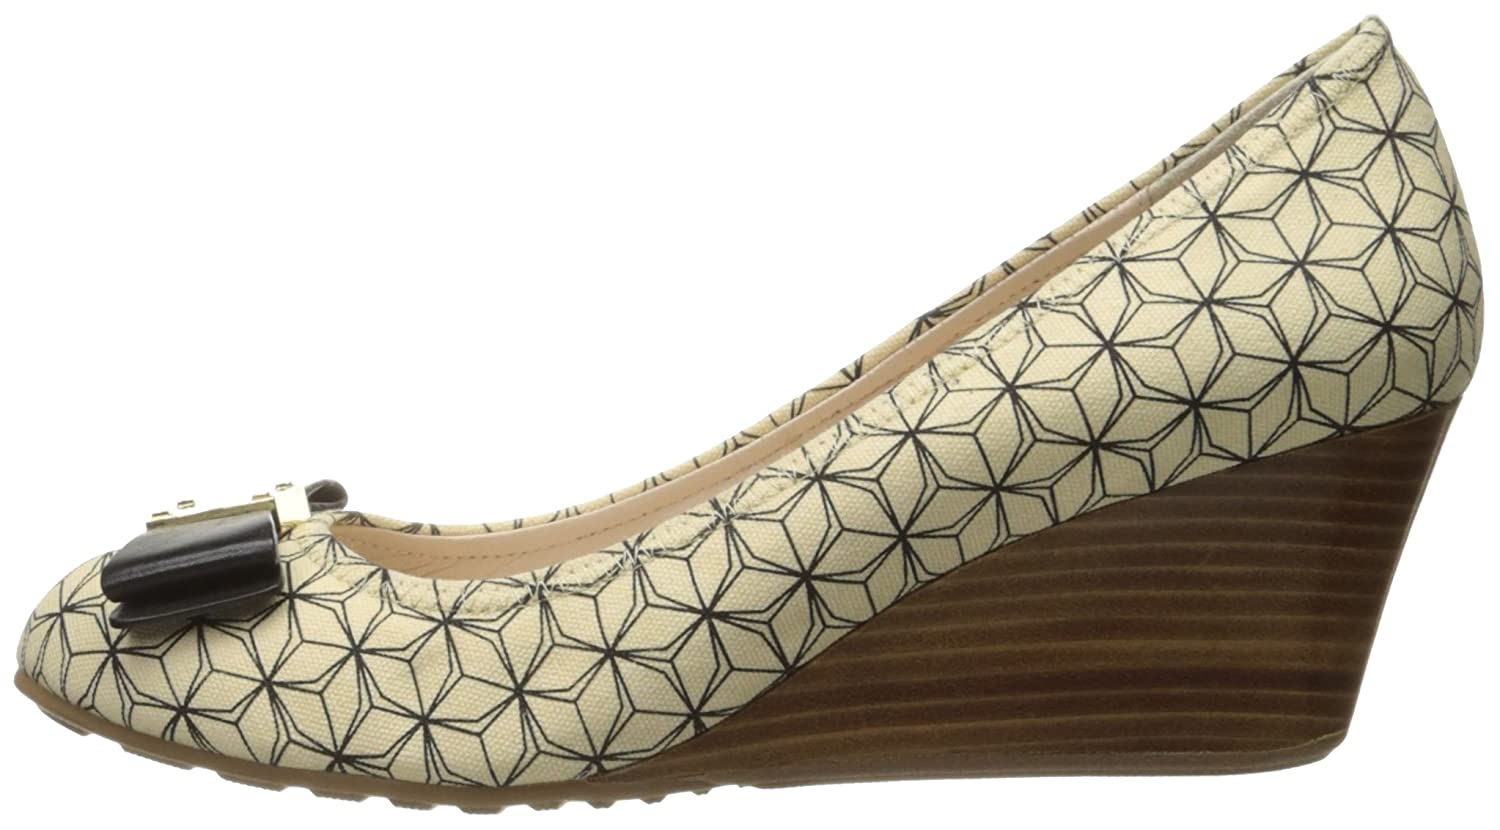 Cole Haan Women's Tali Grand Bow 65 Wedge Pump B06WP1Y9FS 9.5 B(M) US|Ivory/Black Prism Print